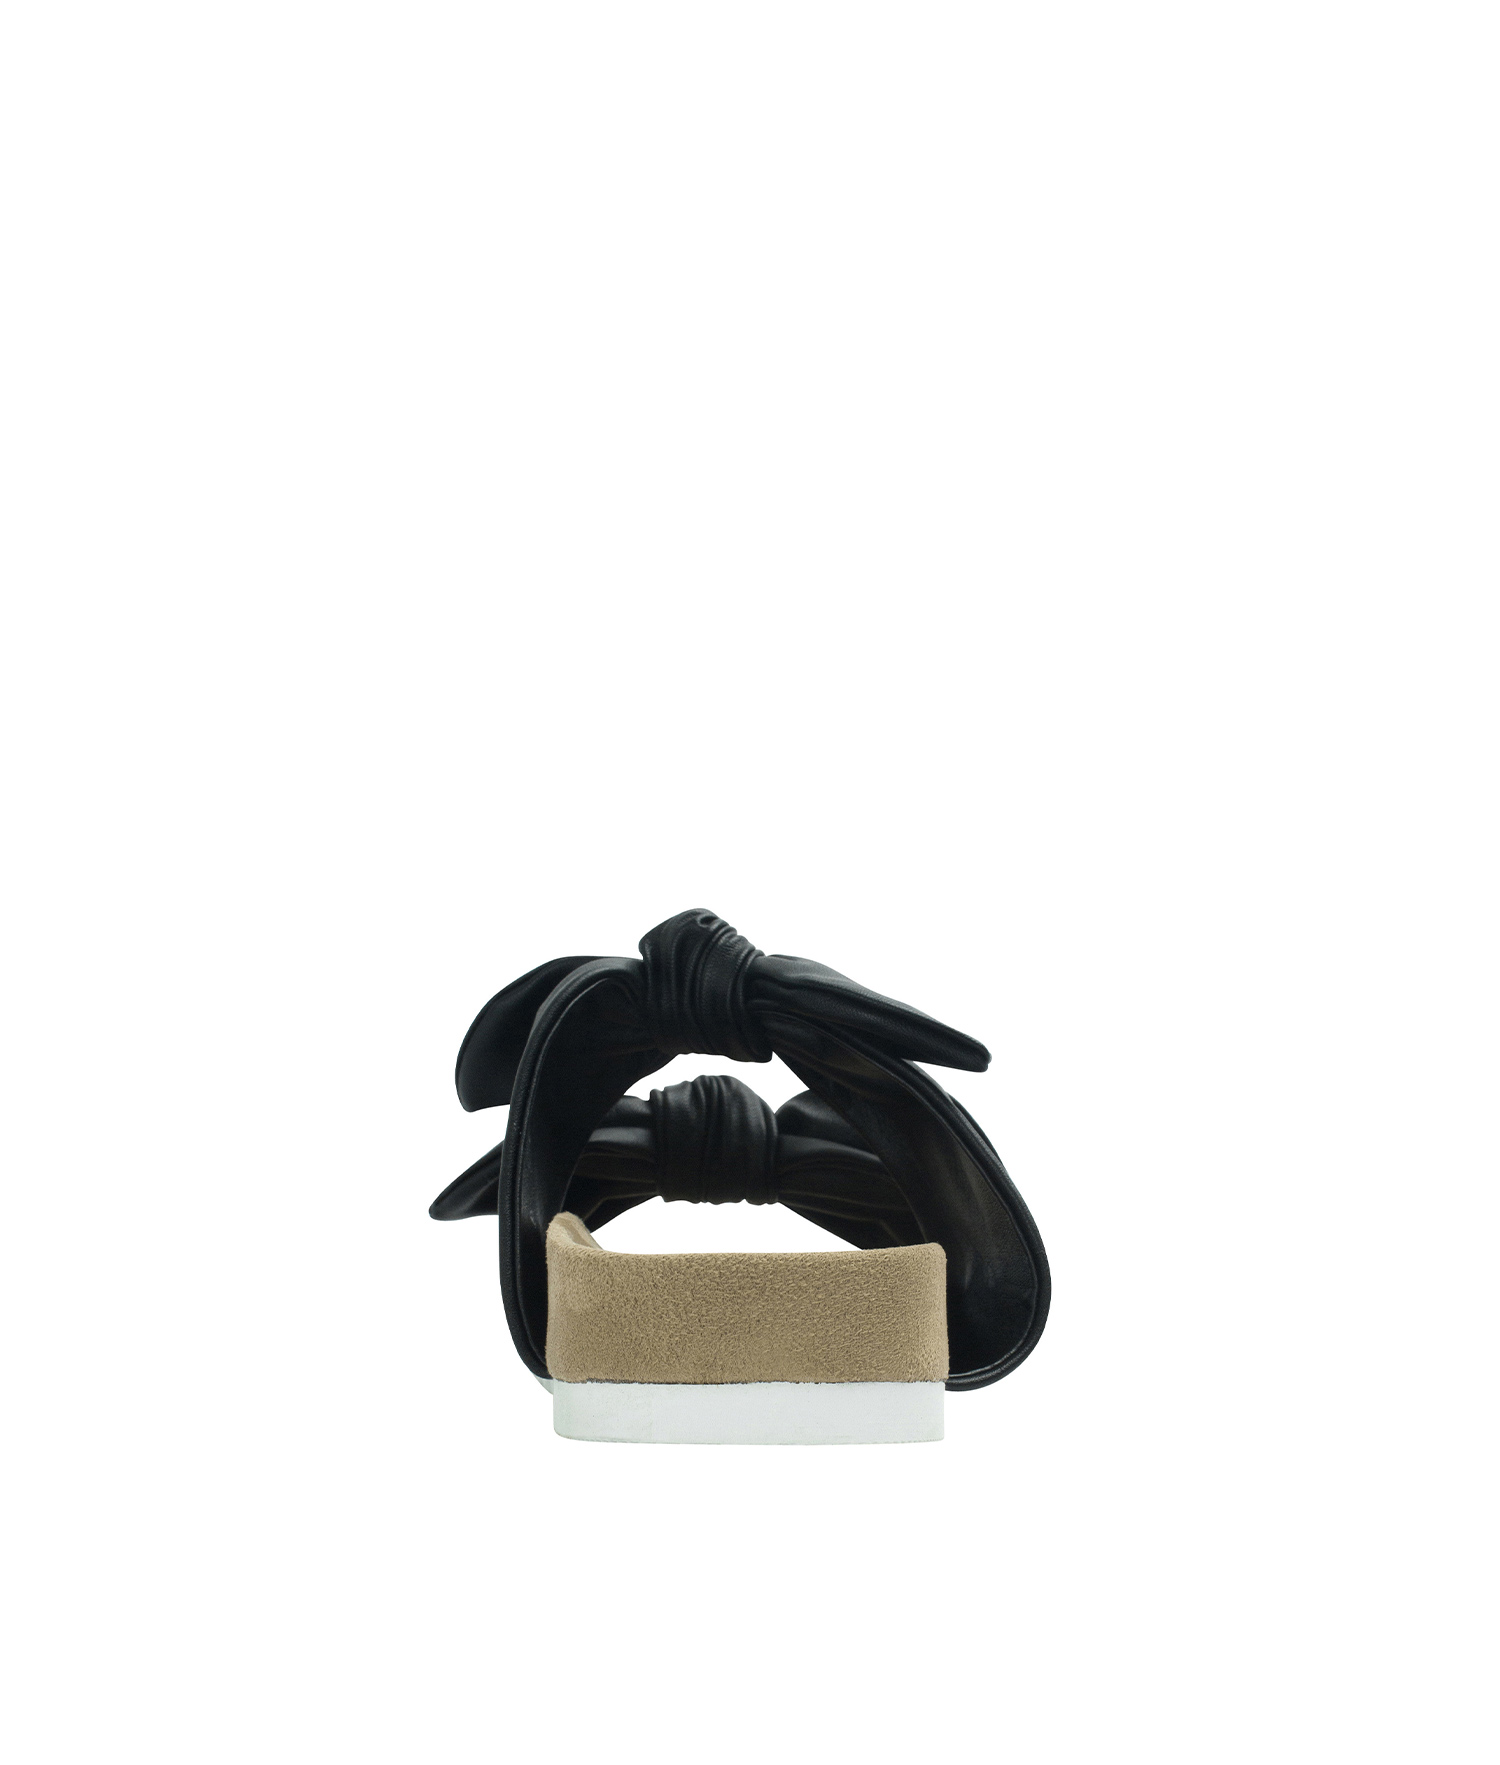 20ffca6c2 AnnaKastle Womens Double Knotted Bow Slide Sandals Black